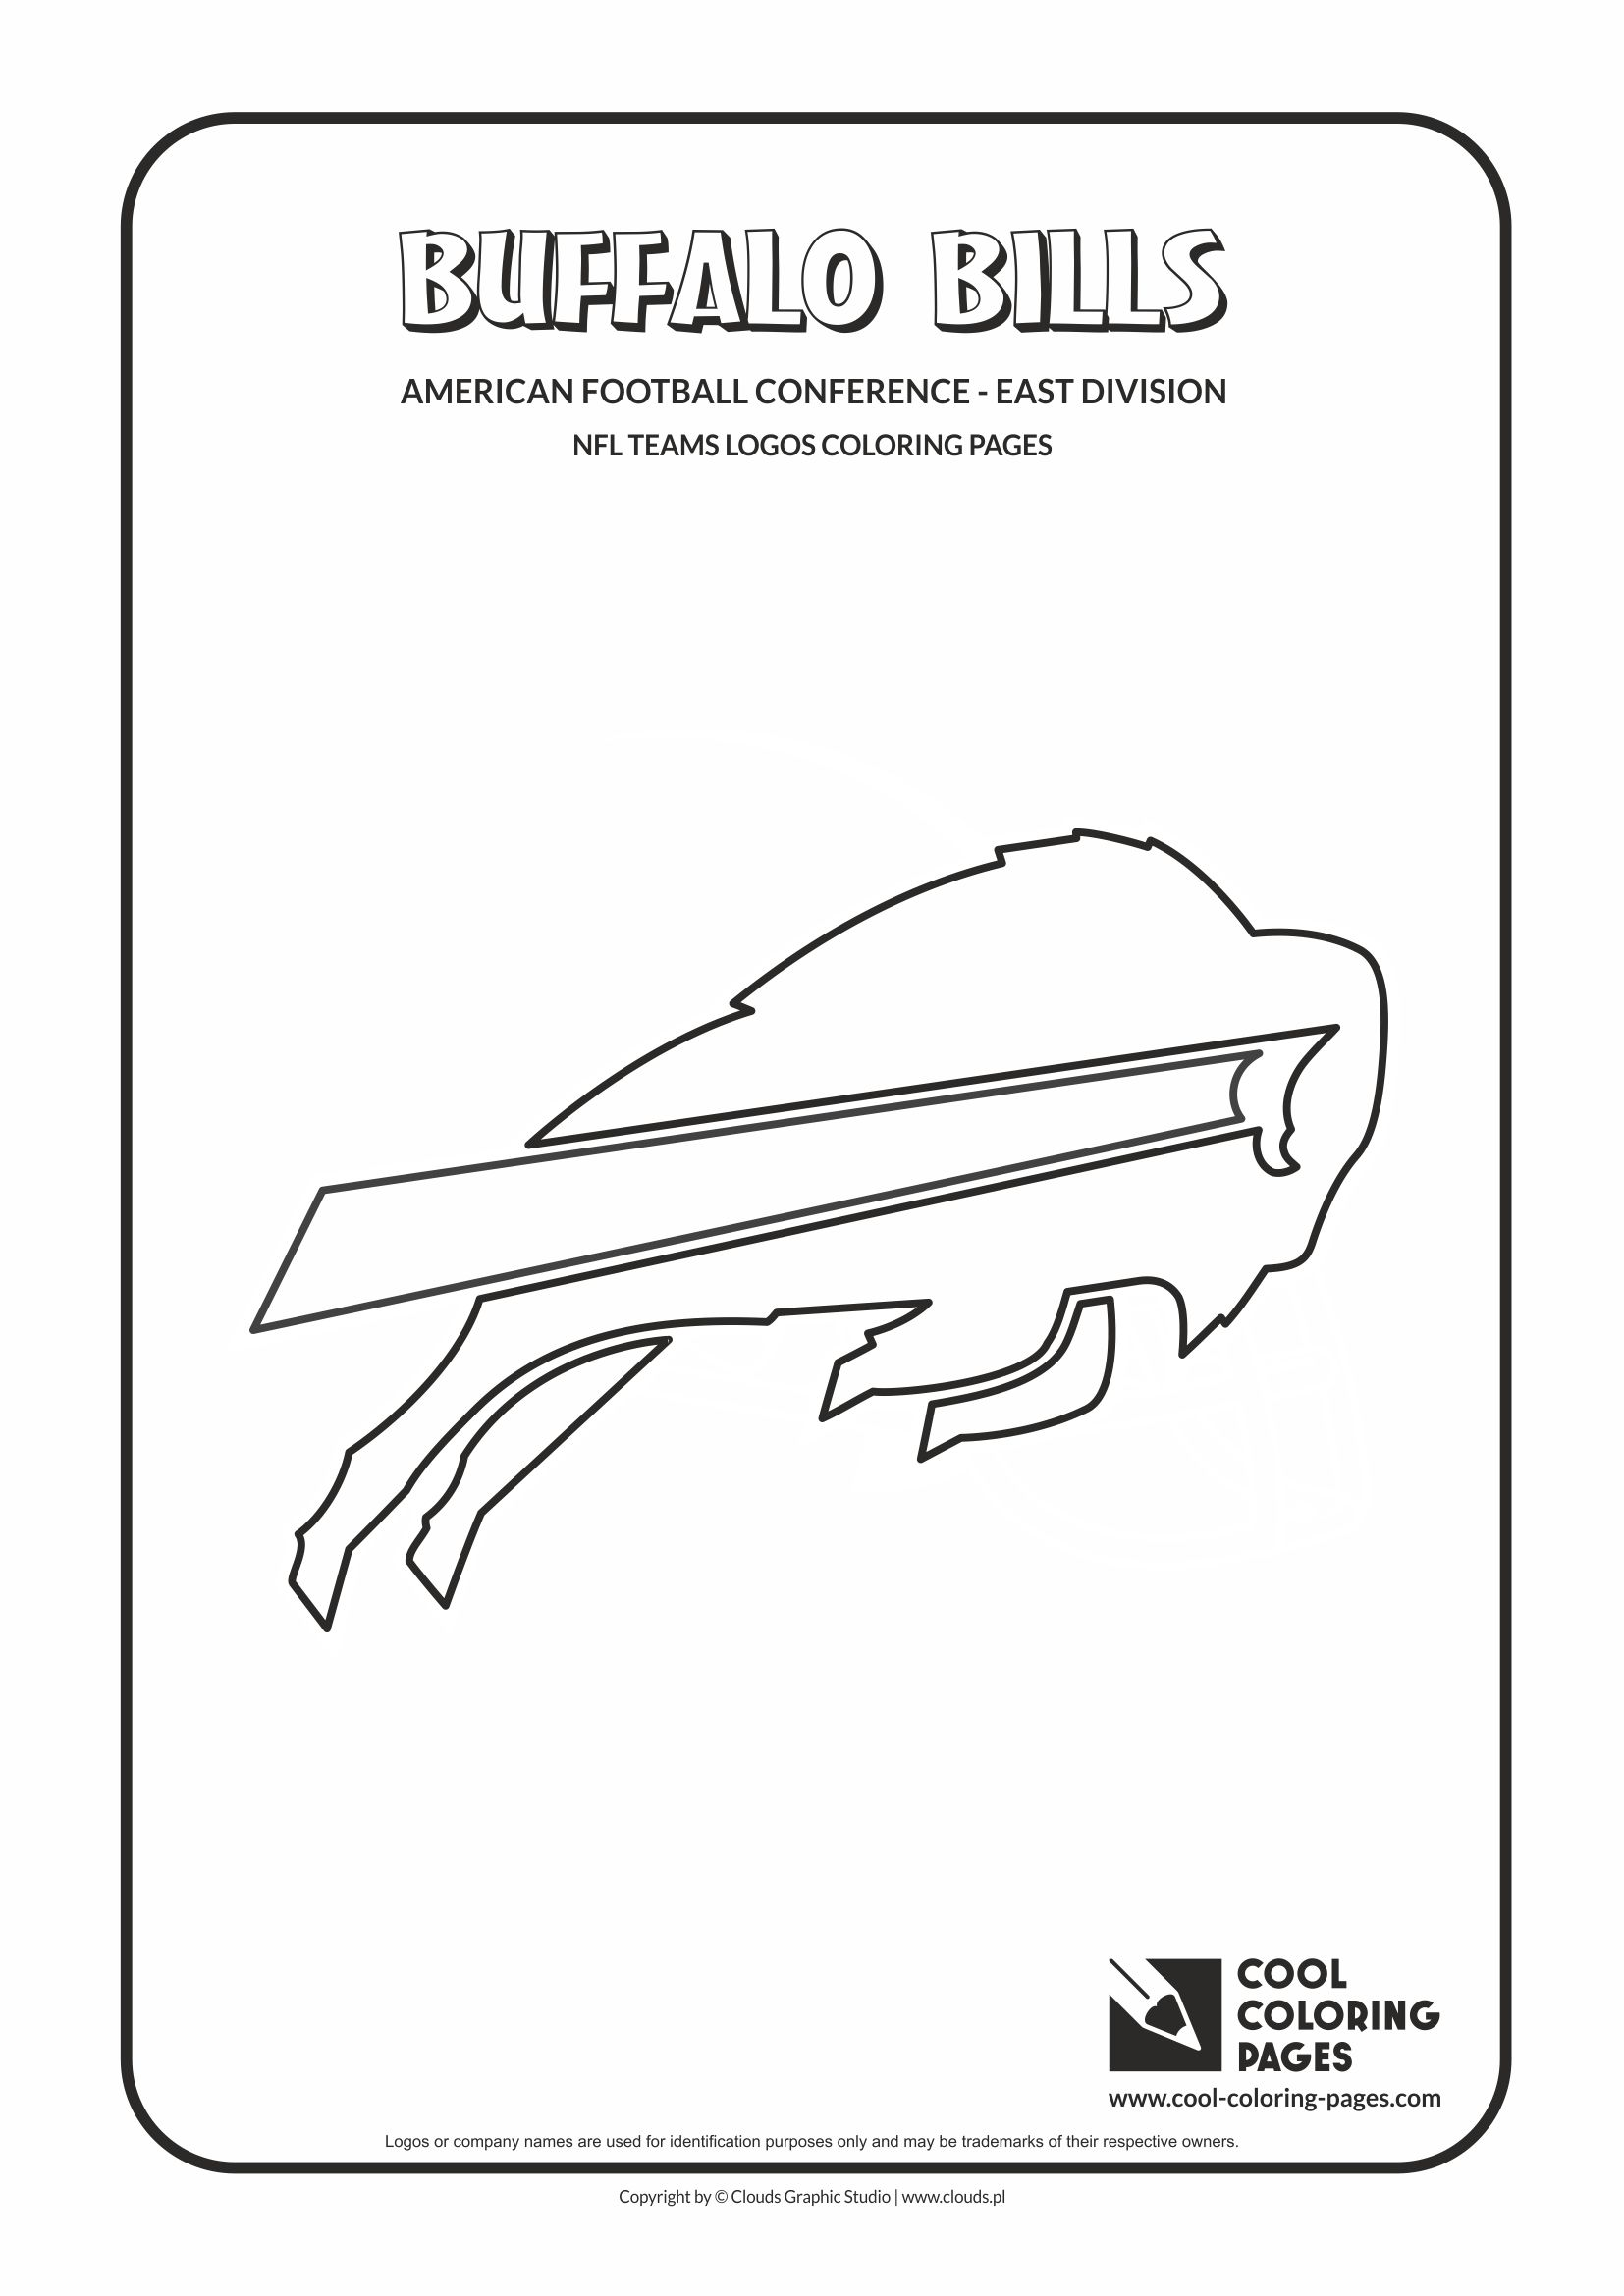 Cool Coloring Pages Buffalo Bills - NFL American football teams ...